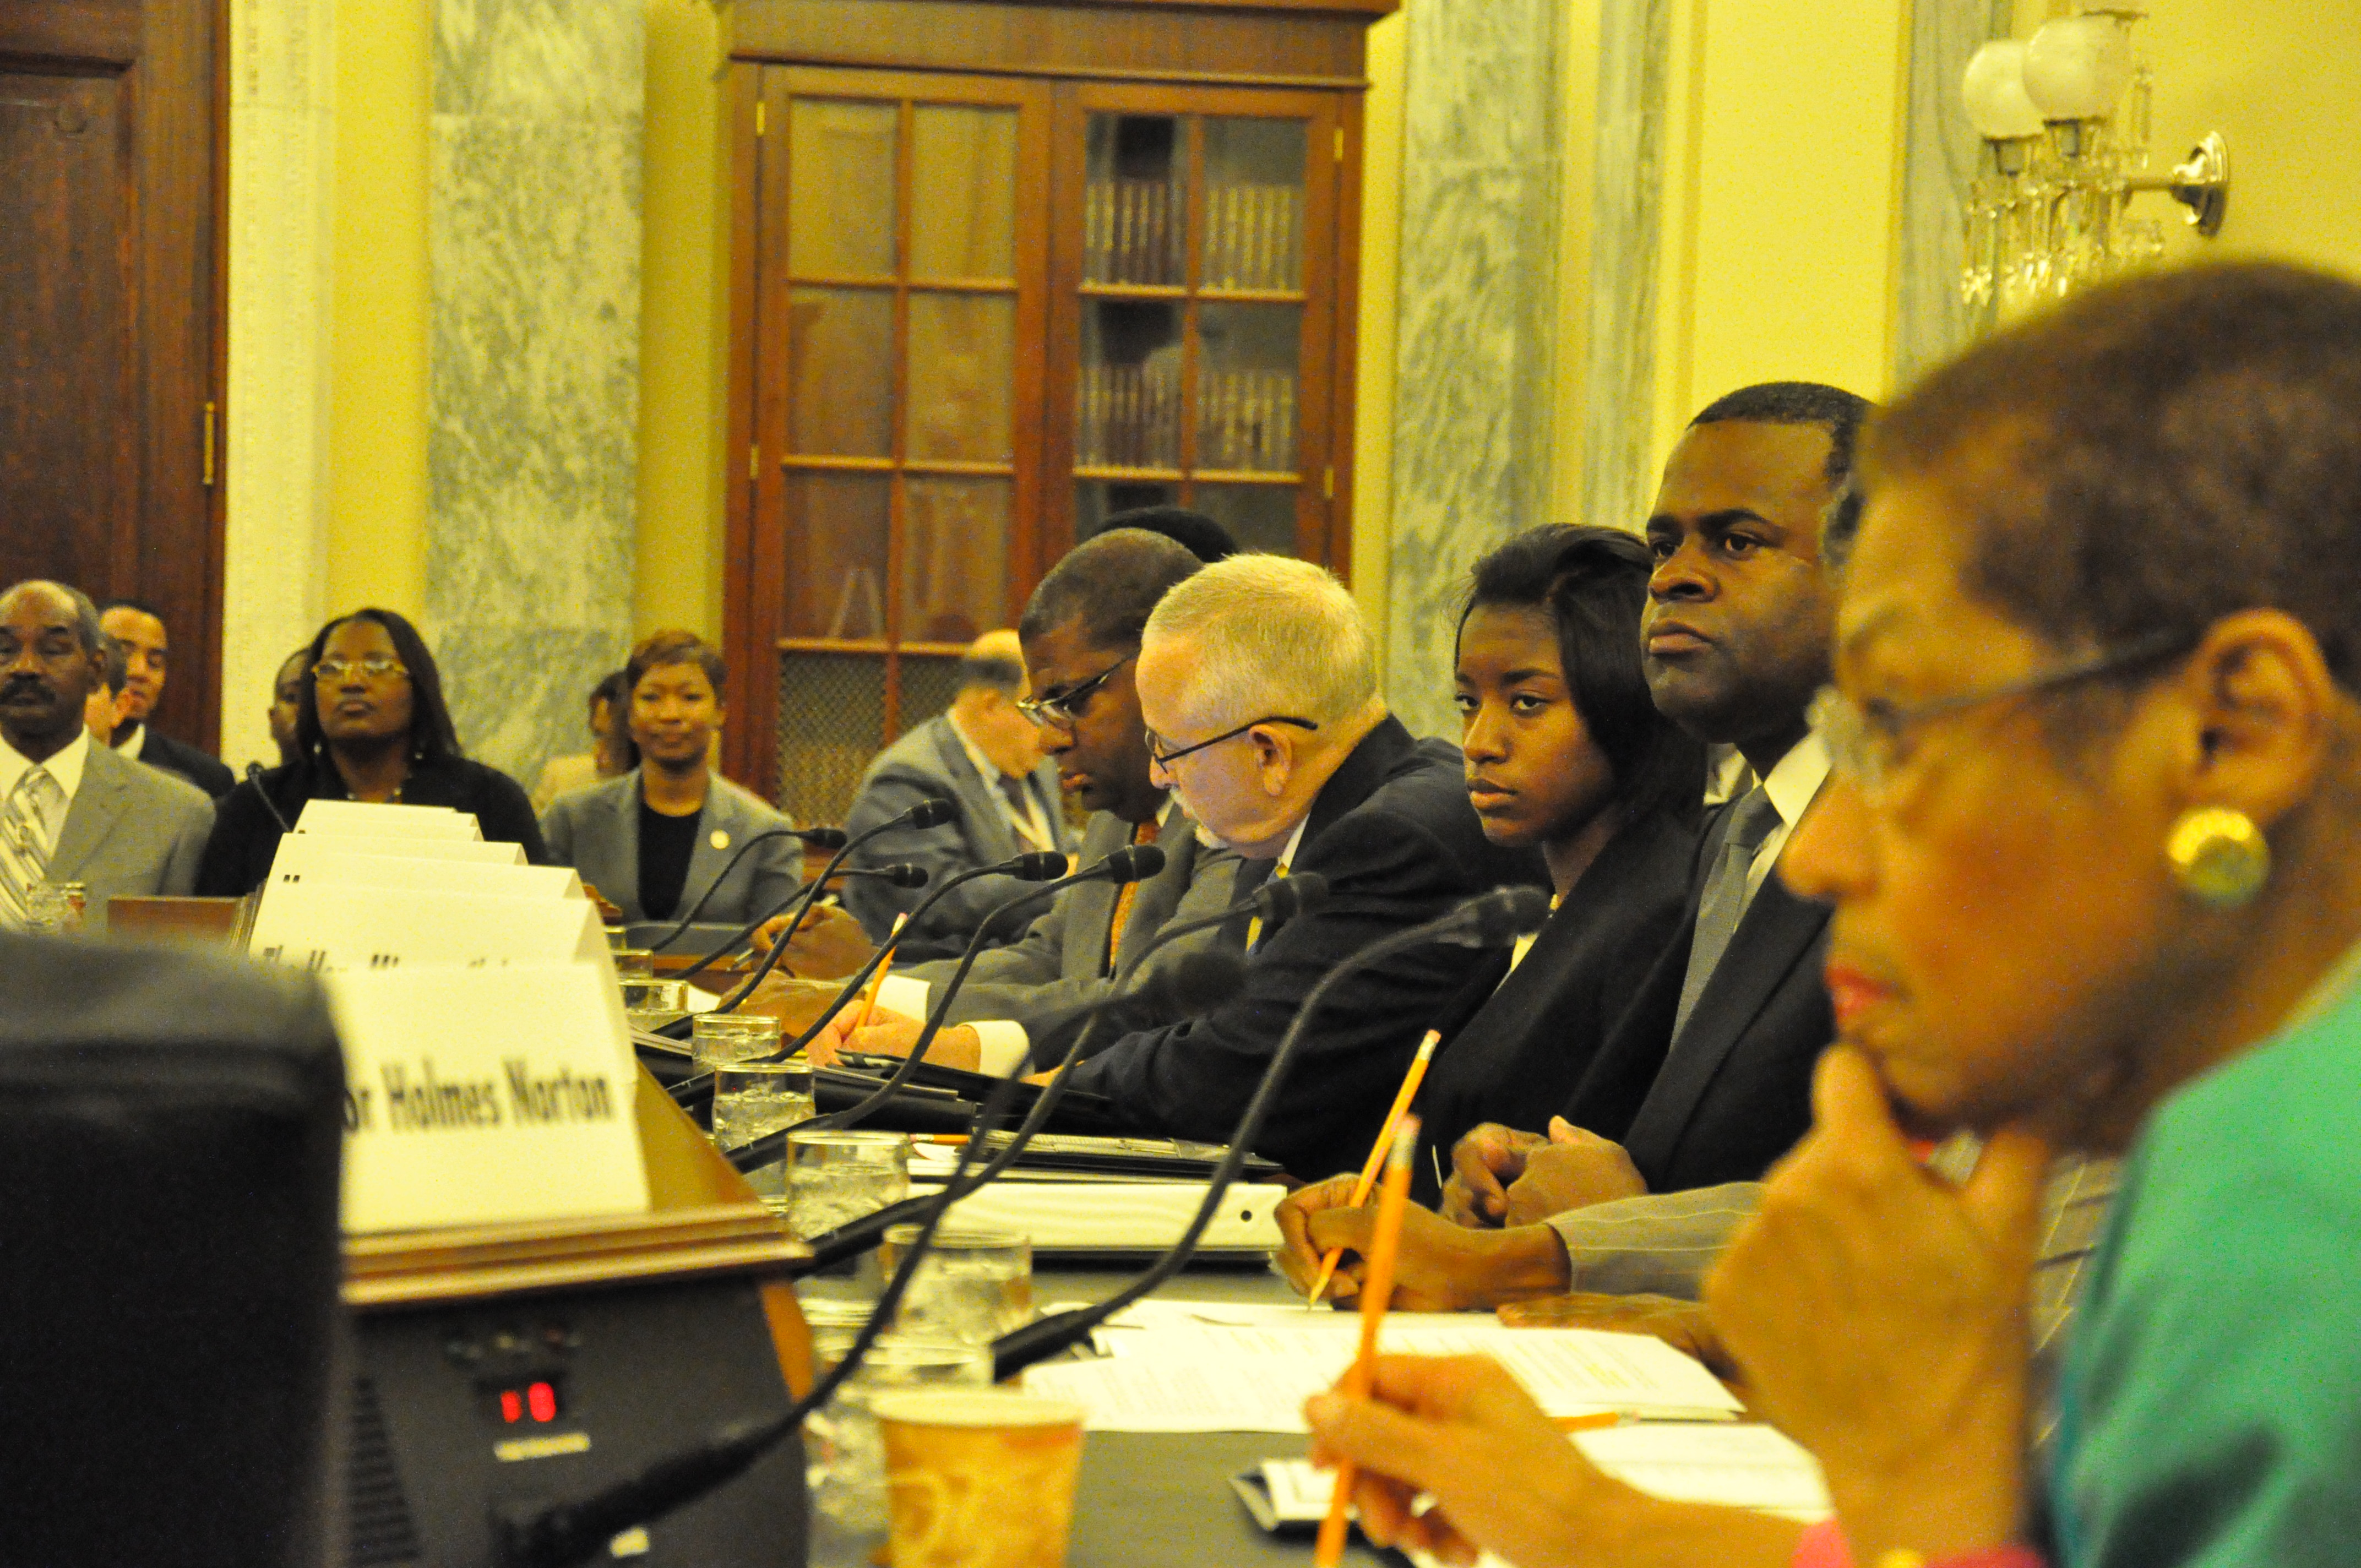 bridgeja-s-parents-listen-to-the-roundtable-discussion-with-senator-landrieu.jpg